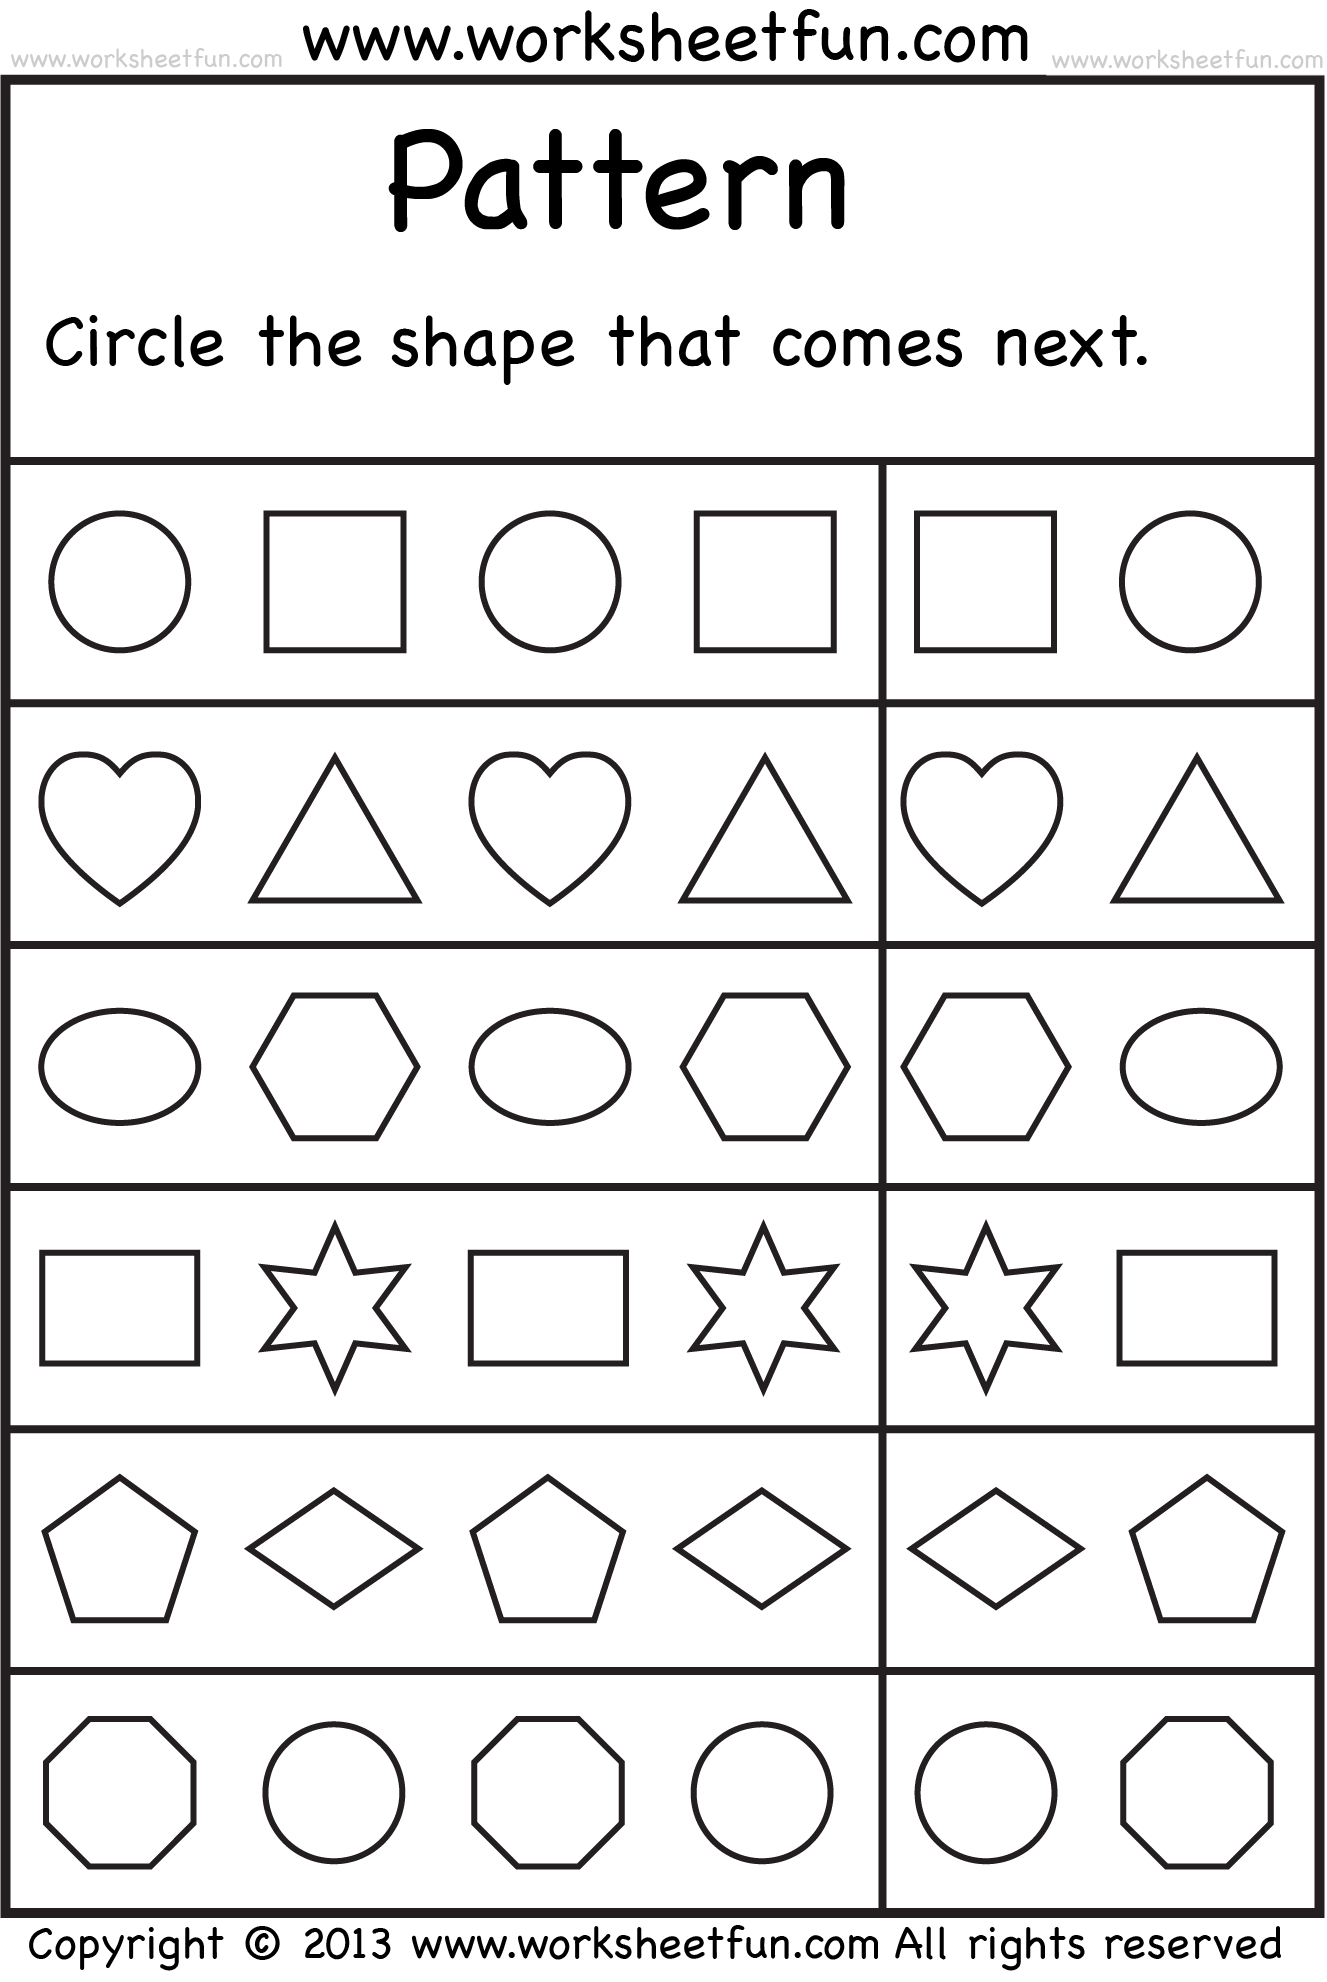 Aldiablosus  Outstanding  Images About School Worksheets On Pinterest  Number Words  With Excellent  Images About School Worksheets On Pinterest  Number Words Alphabet Worksheets And Free Printable Kindergarten Worksheets With Divine Acid Base Worksheets Also Worksheets For Two Year Olds In Addition Percents To Decimals Worksheet And Missing Number Addition And Subtraction Worksheets As Well As Geometry Worksheet Arc Length Sector Area Segment Area Additionally Sight Words Printable Worksheets From Pinterestcom With Aldiablosus  Excellent  Images About School Worksheets On Pinterest  Number Words  With Divine  Images About School Worksheets On Pinterest  Number Words Alphabet Worksheets And Free Printable Kindergarten Worksheets And Outstanding Acid Base Worksheets Also Worksheets For Two Year Olds In Addition Percents To Decimals Worksheet From Pinterestcom